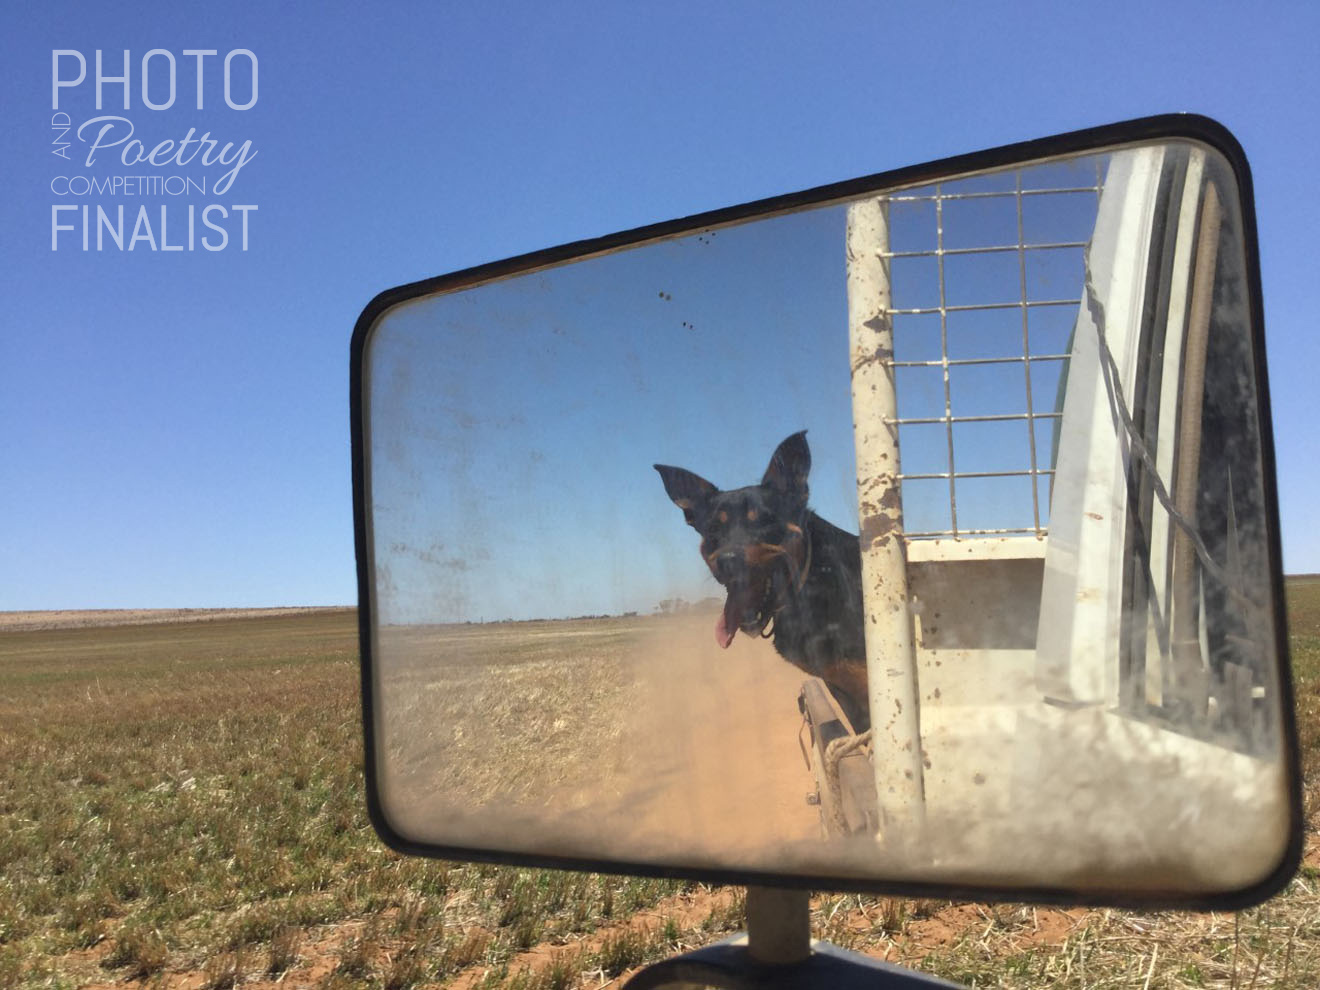 Mac - This picture shows Mac, our oldest dog, living his best life with the wind in his ears, tongue out, in his favourite place to be—the back of the ute going down a remote dirt road. RHIANNA O'BRIEN, Speed, VIC